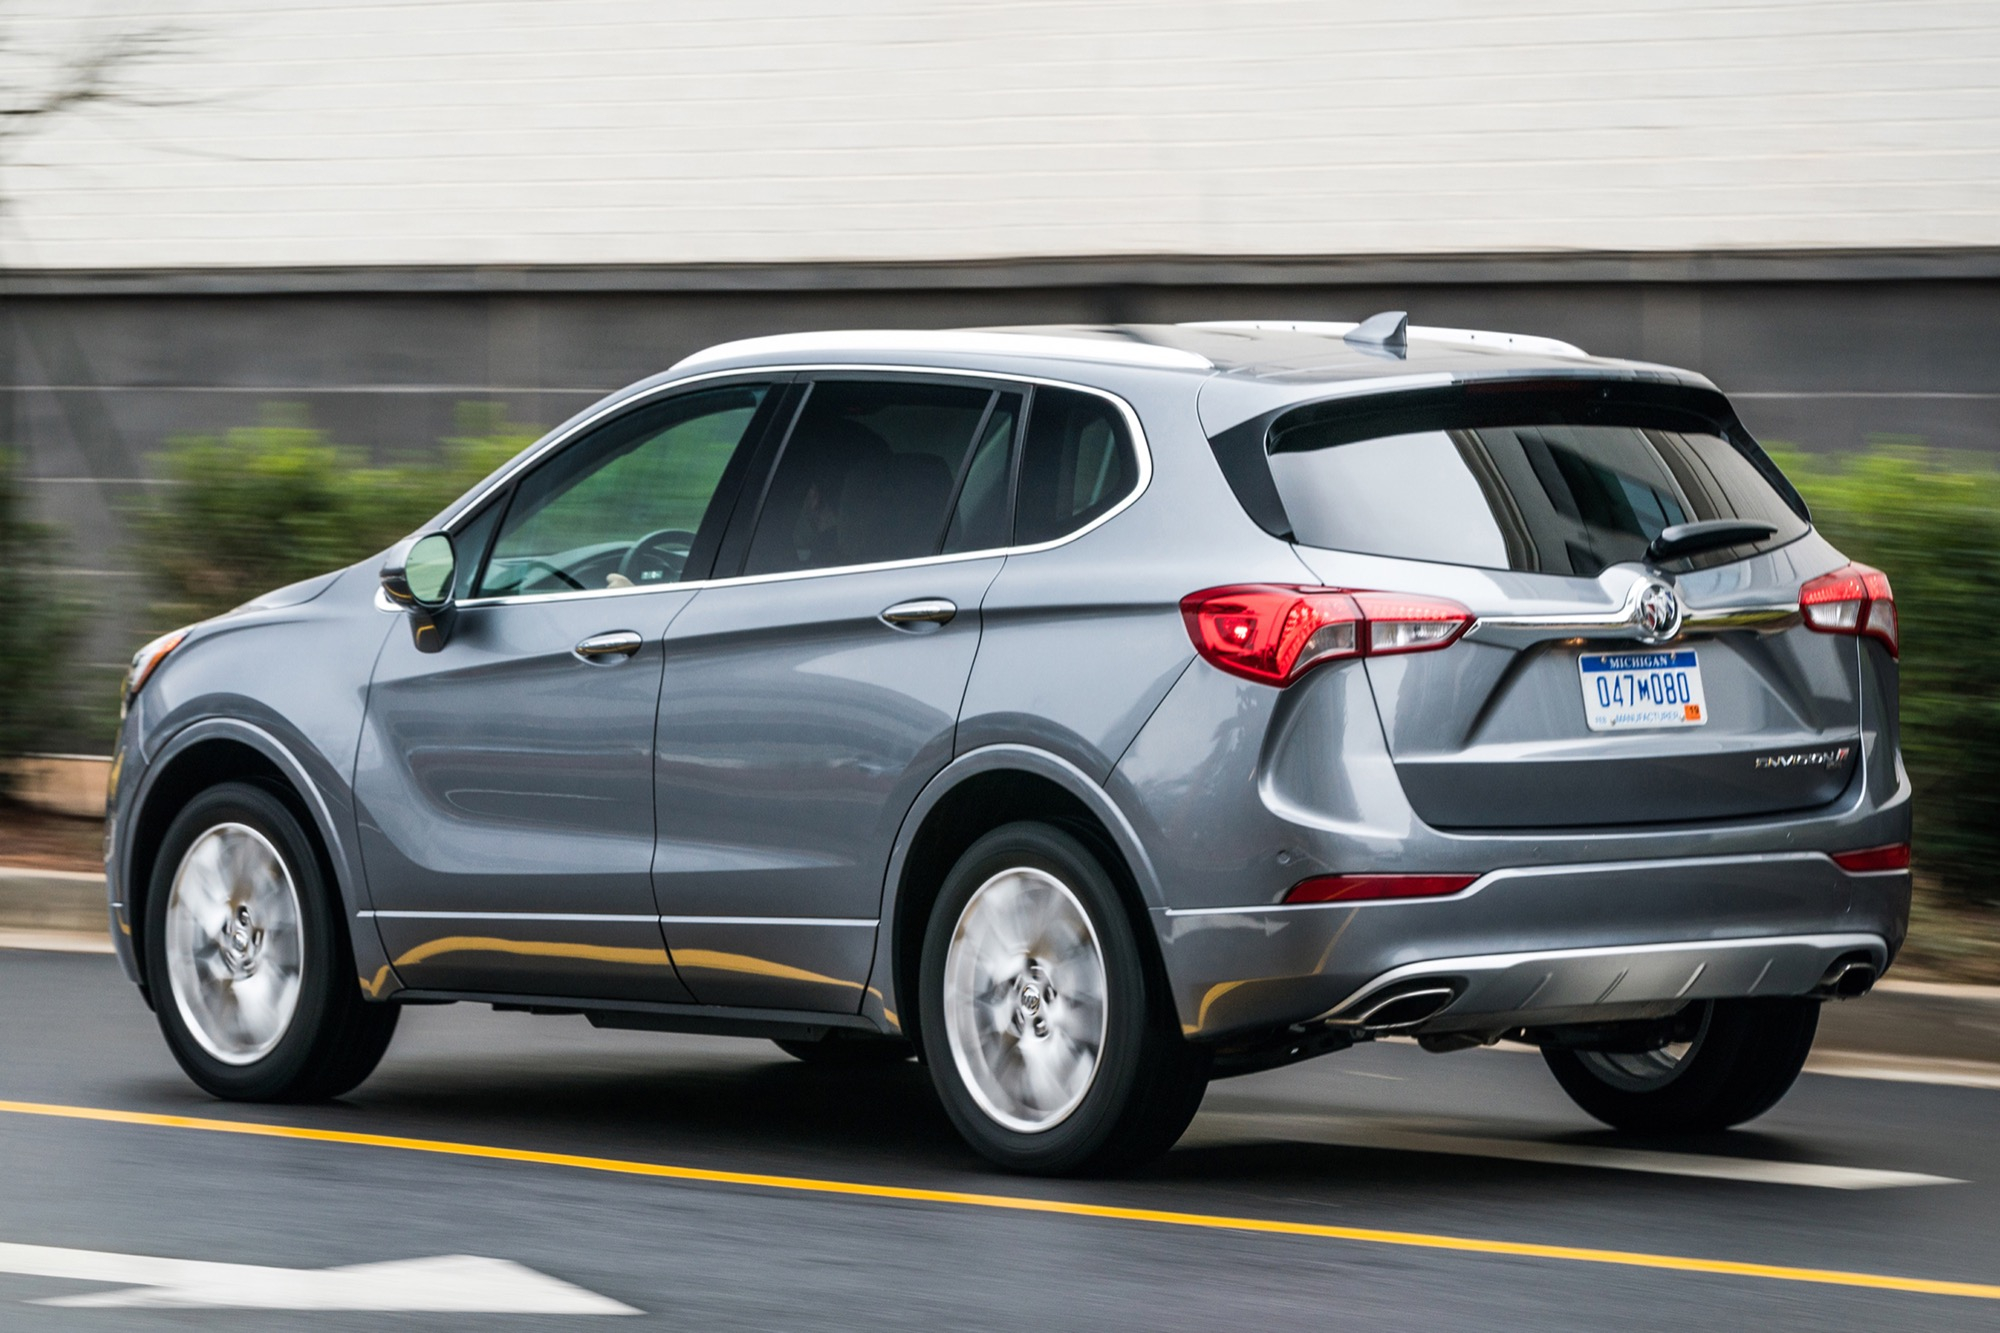 2019 Buick Envision Interactive Questions & Answers | Gm Can A New 2022 Buick Envision Be Flat Towed